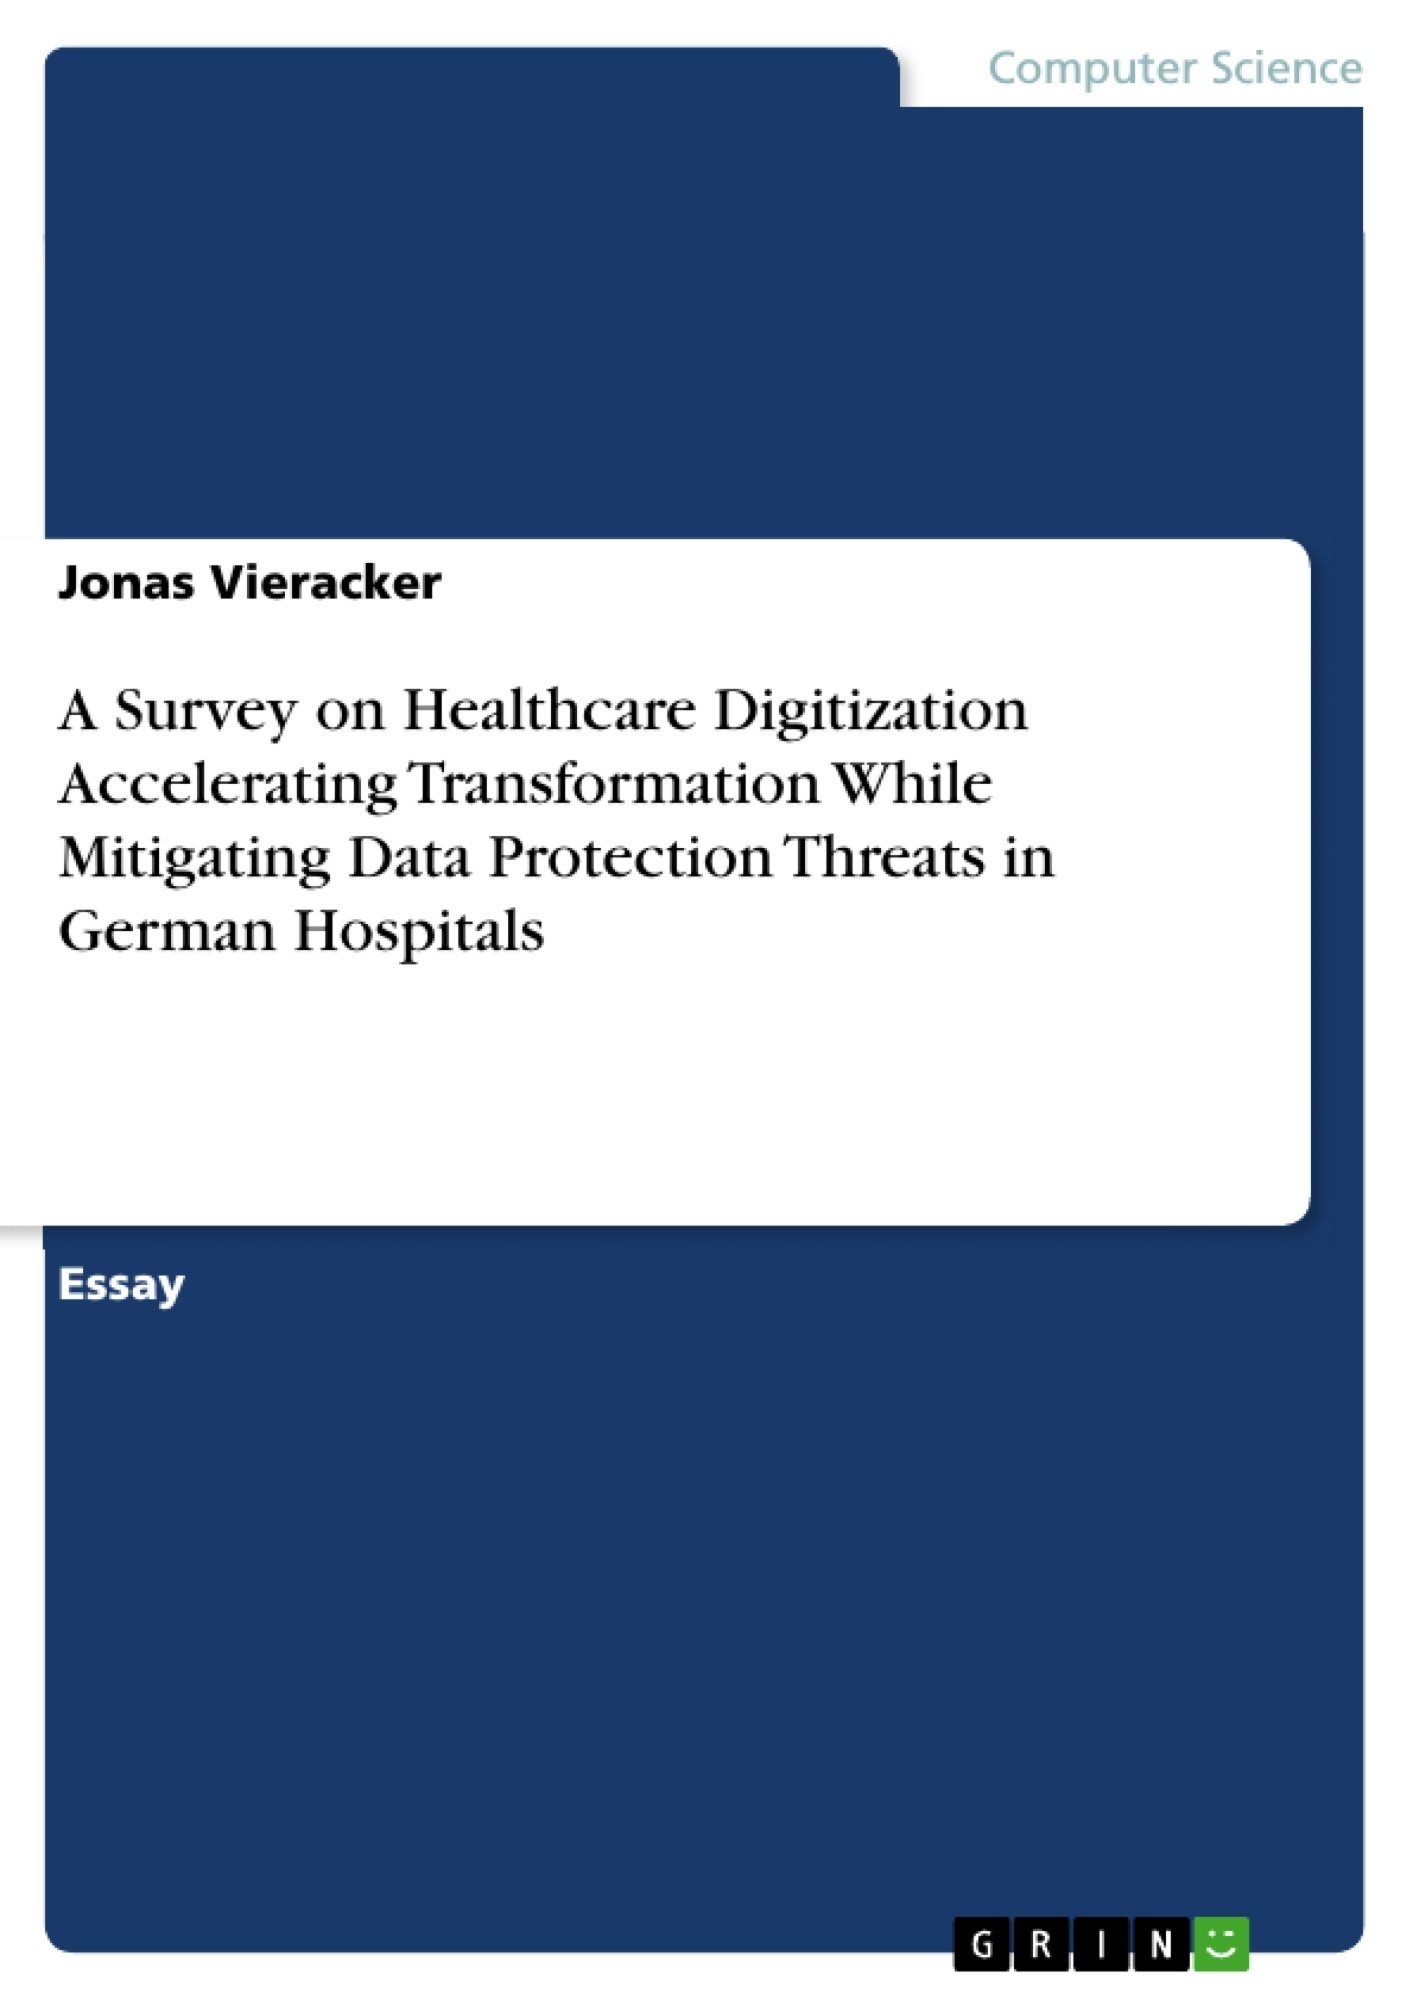 grin   a survey on healthcare digitization accelerating transformation  while mitigating data protection threats in german hospitals